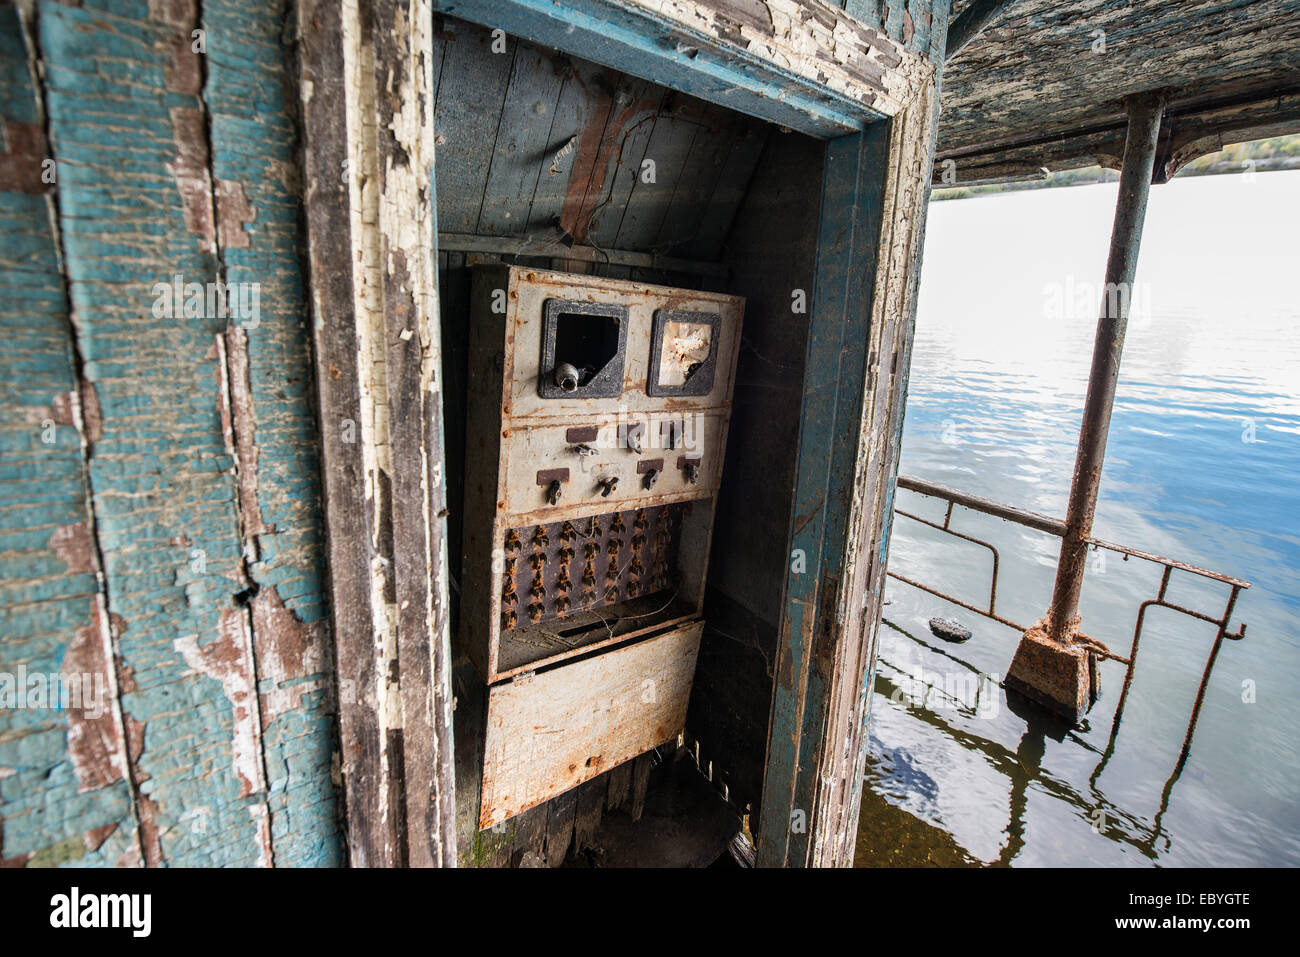 the band fuse box fusebox bio com fuse box stock photos and fuse box house stock photos fuse box house stock images alamy fuse box on floating restaurant